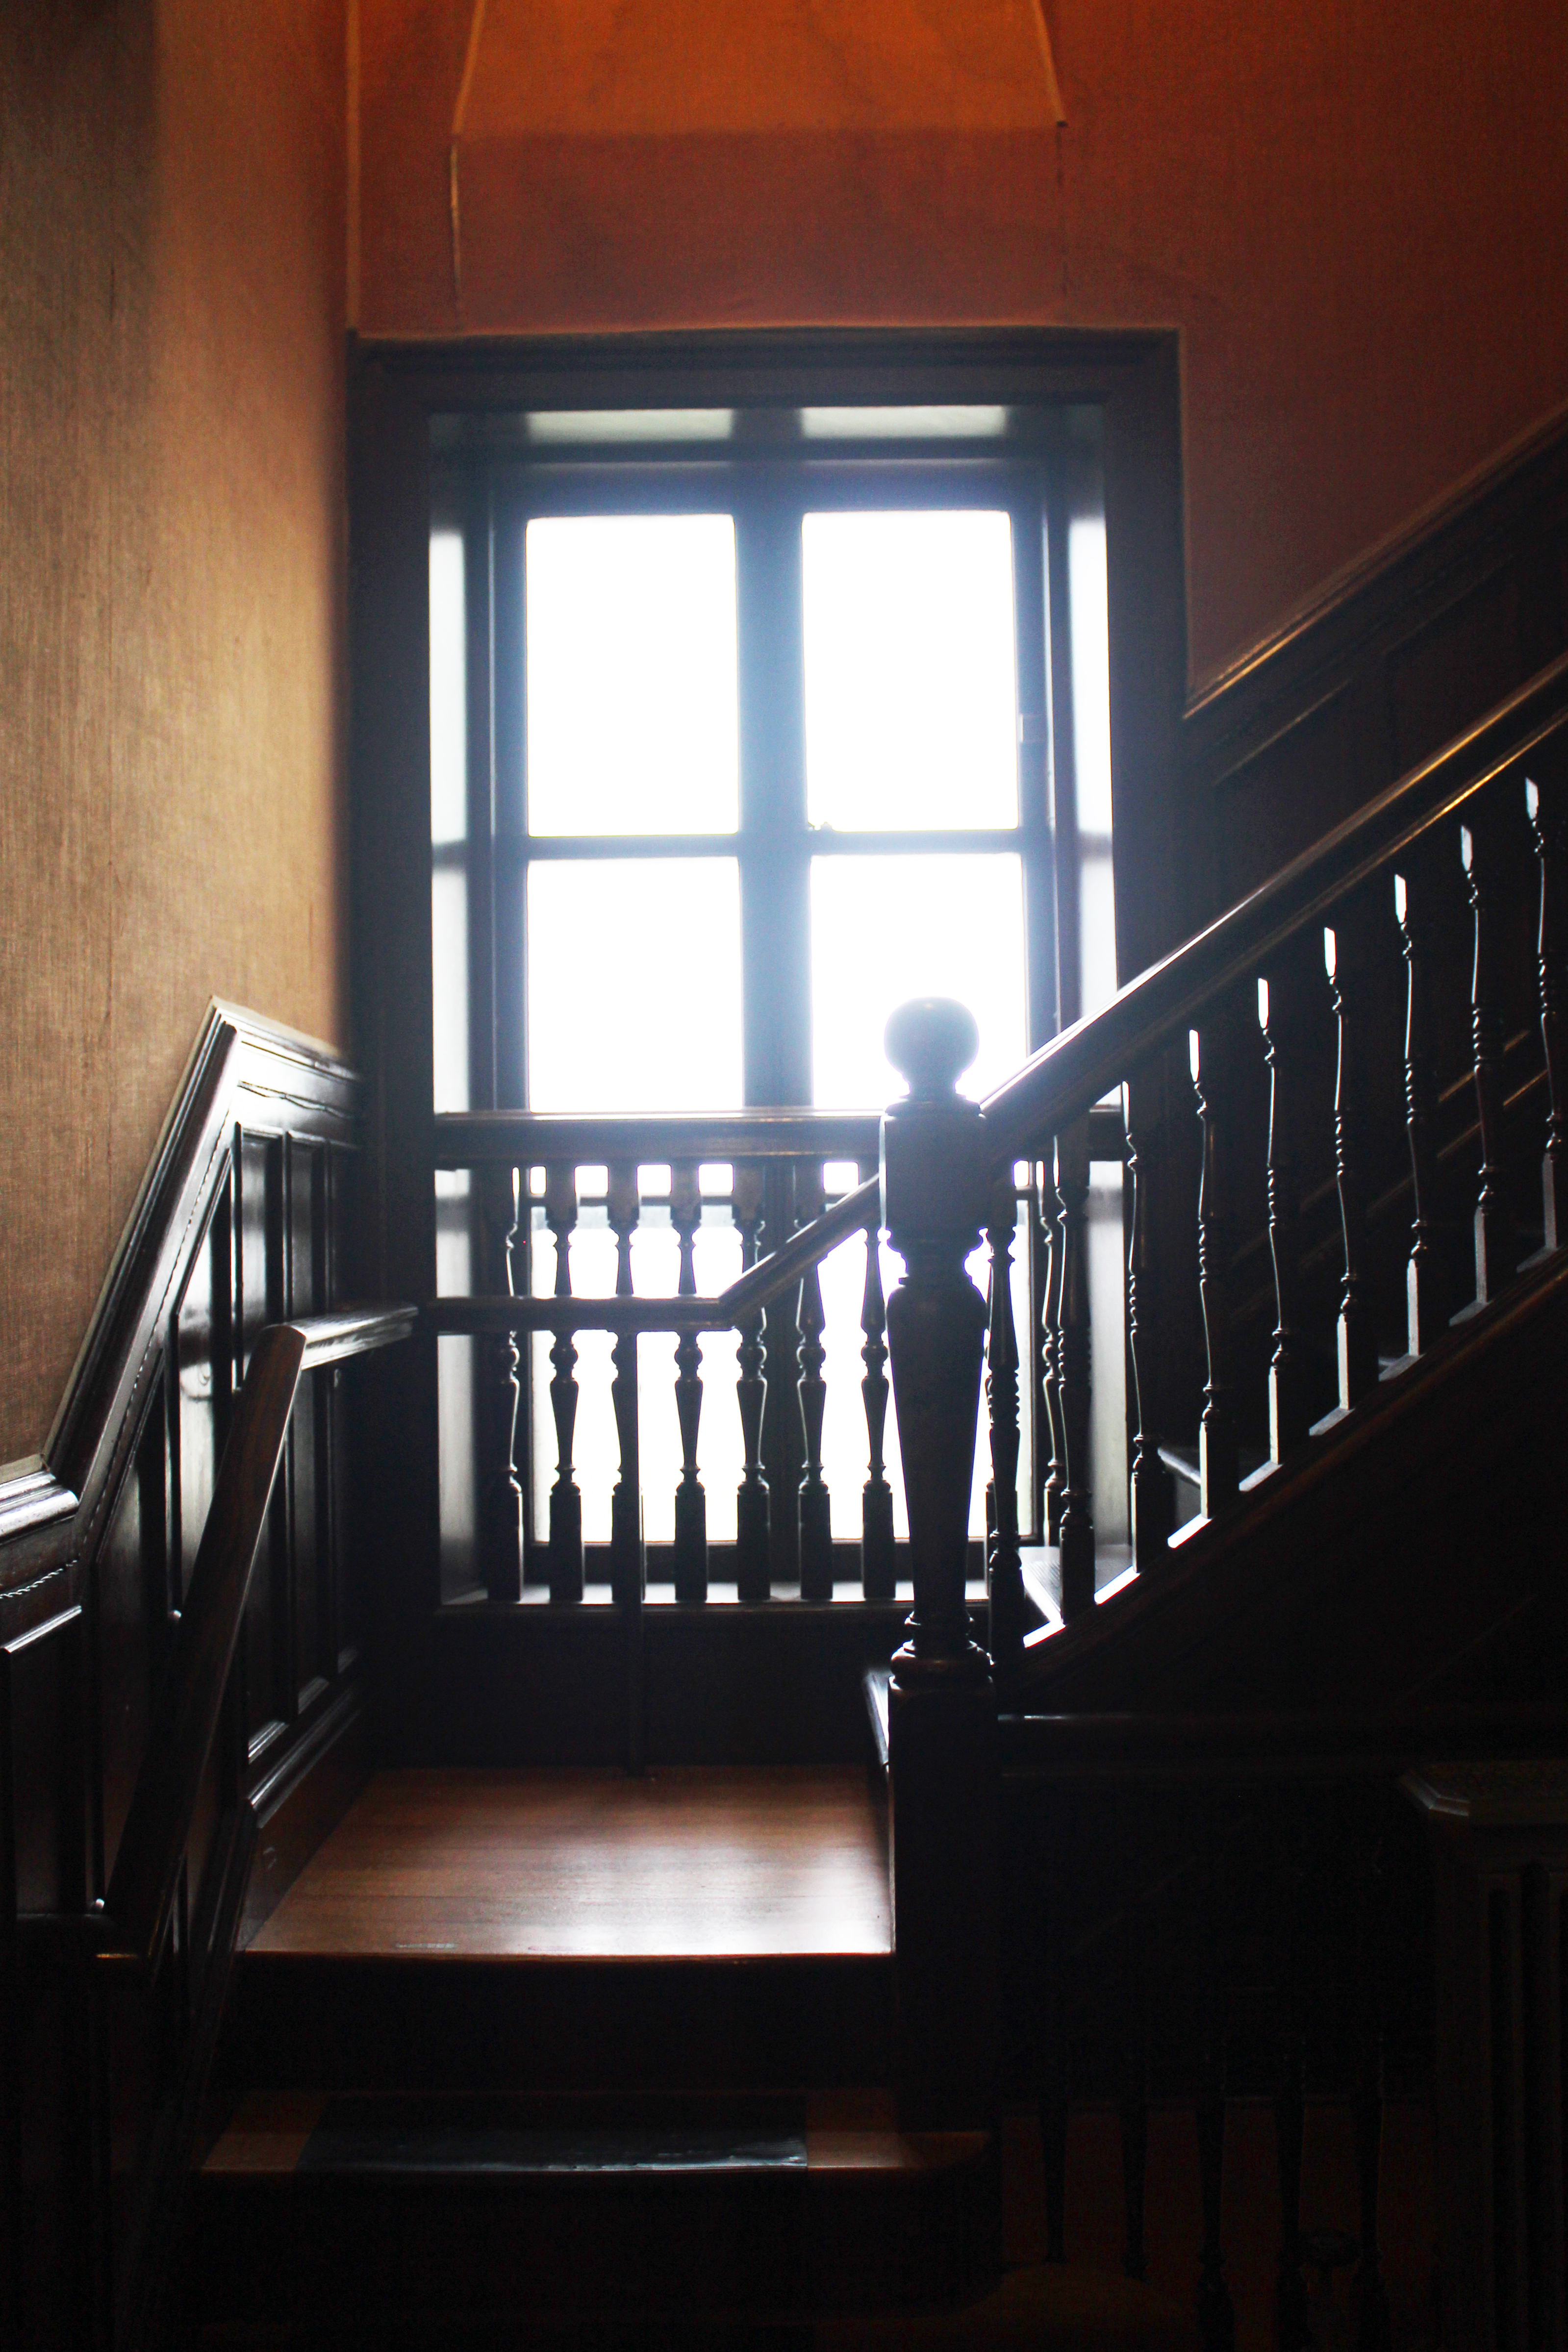 The Breakers - Newport RI | Diffused light pours through grand windows of the hallway leading into the kitchen of The Breakers. One assumes this area was frequented by staff alone, but with such exquisite woodwork and turned rails, who would mind?